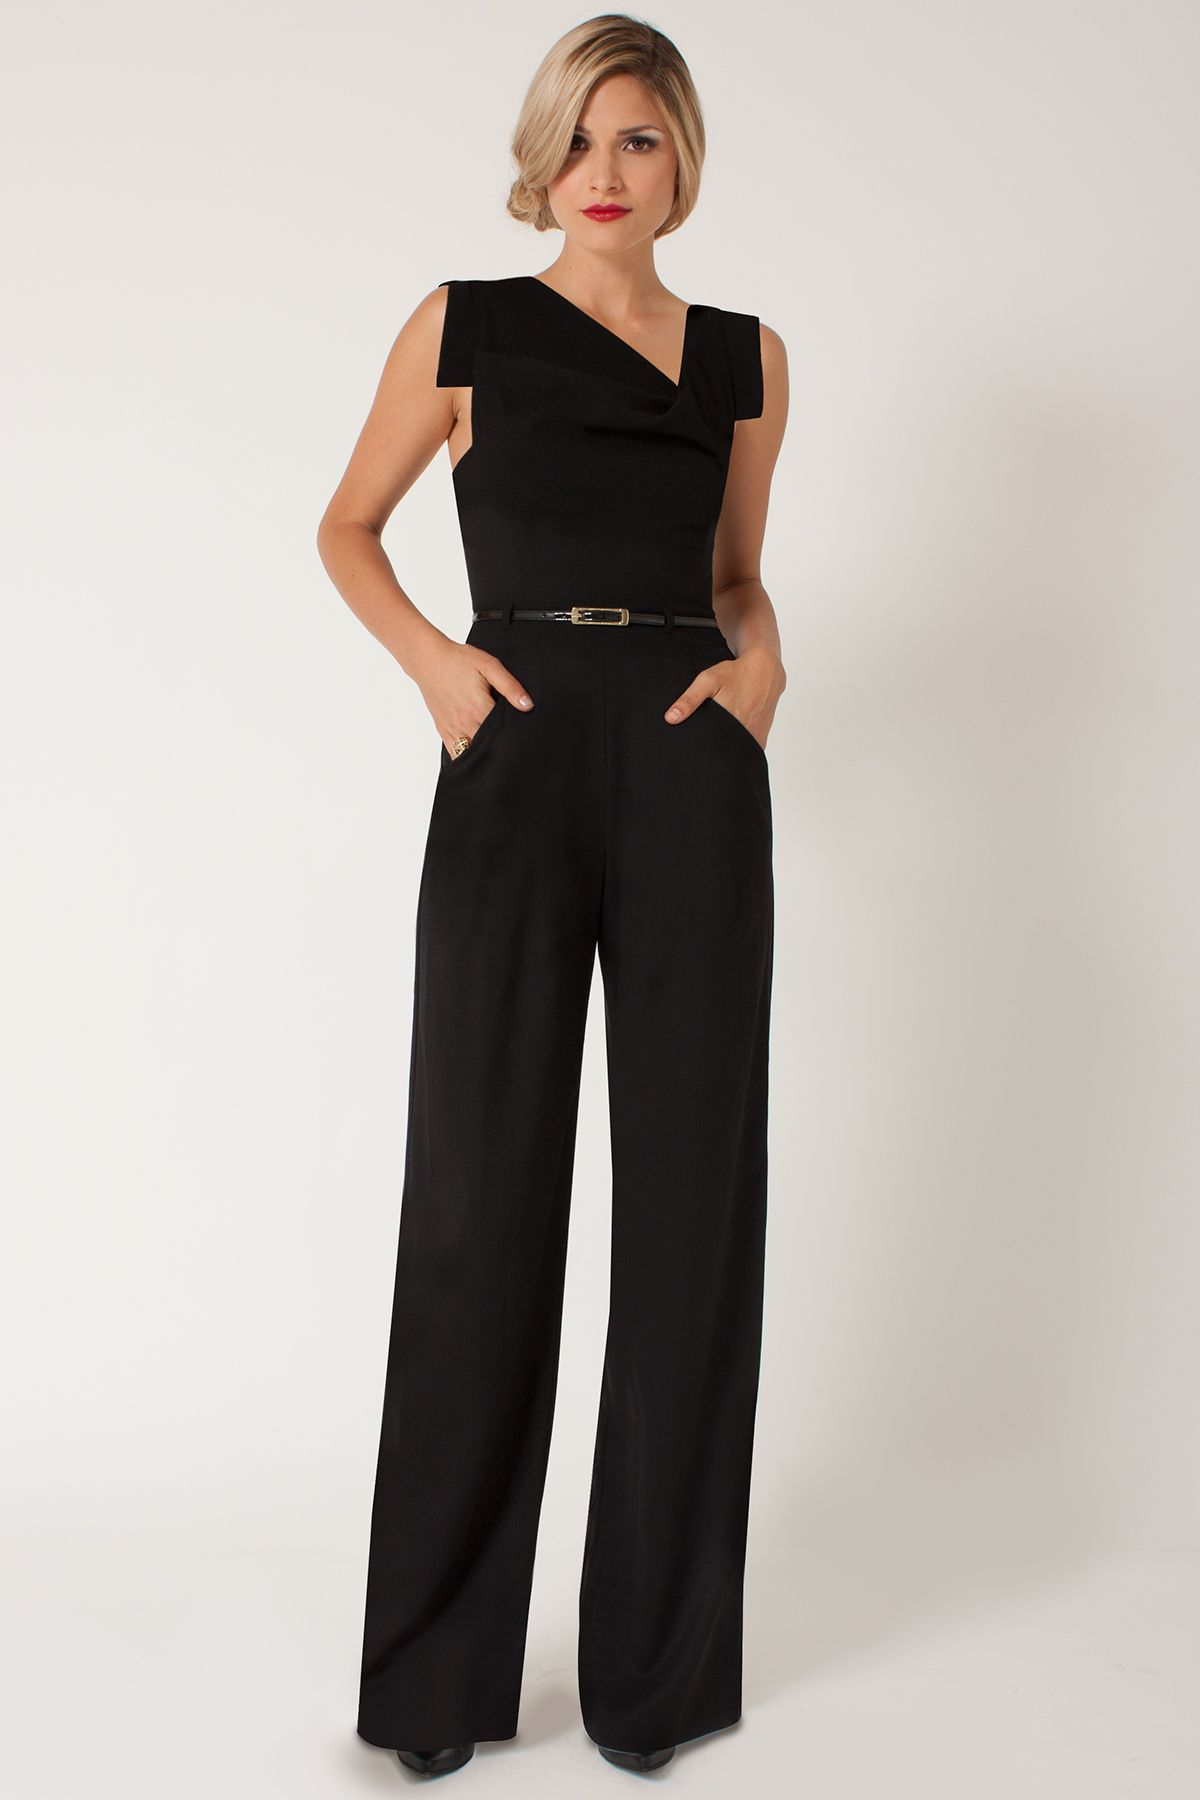 6cdde87d040 black jumpsuits for women